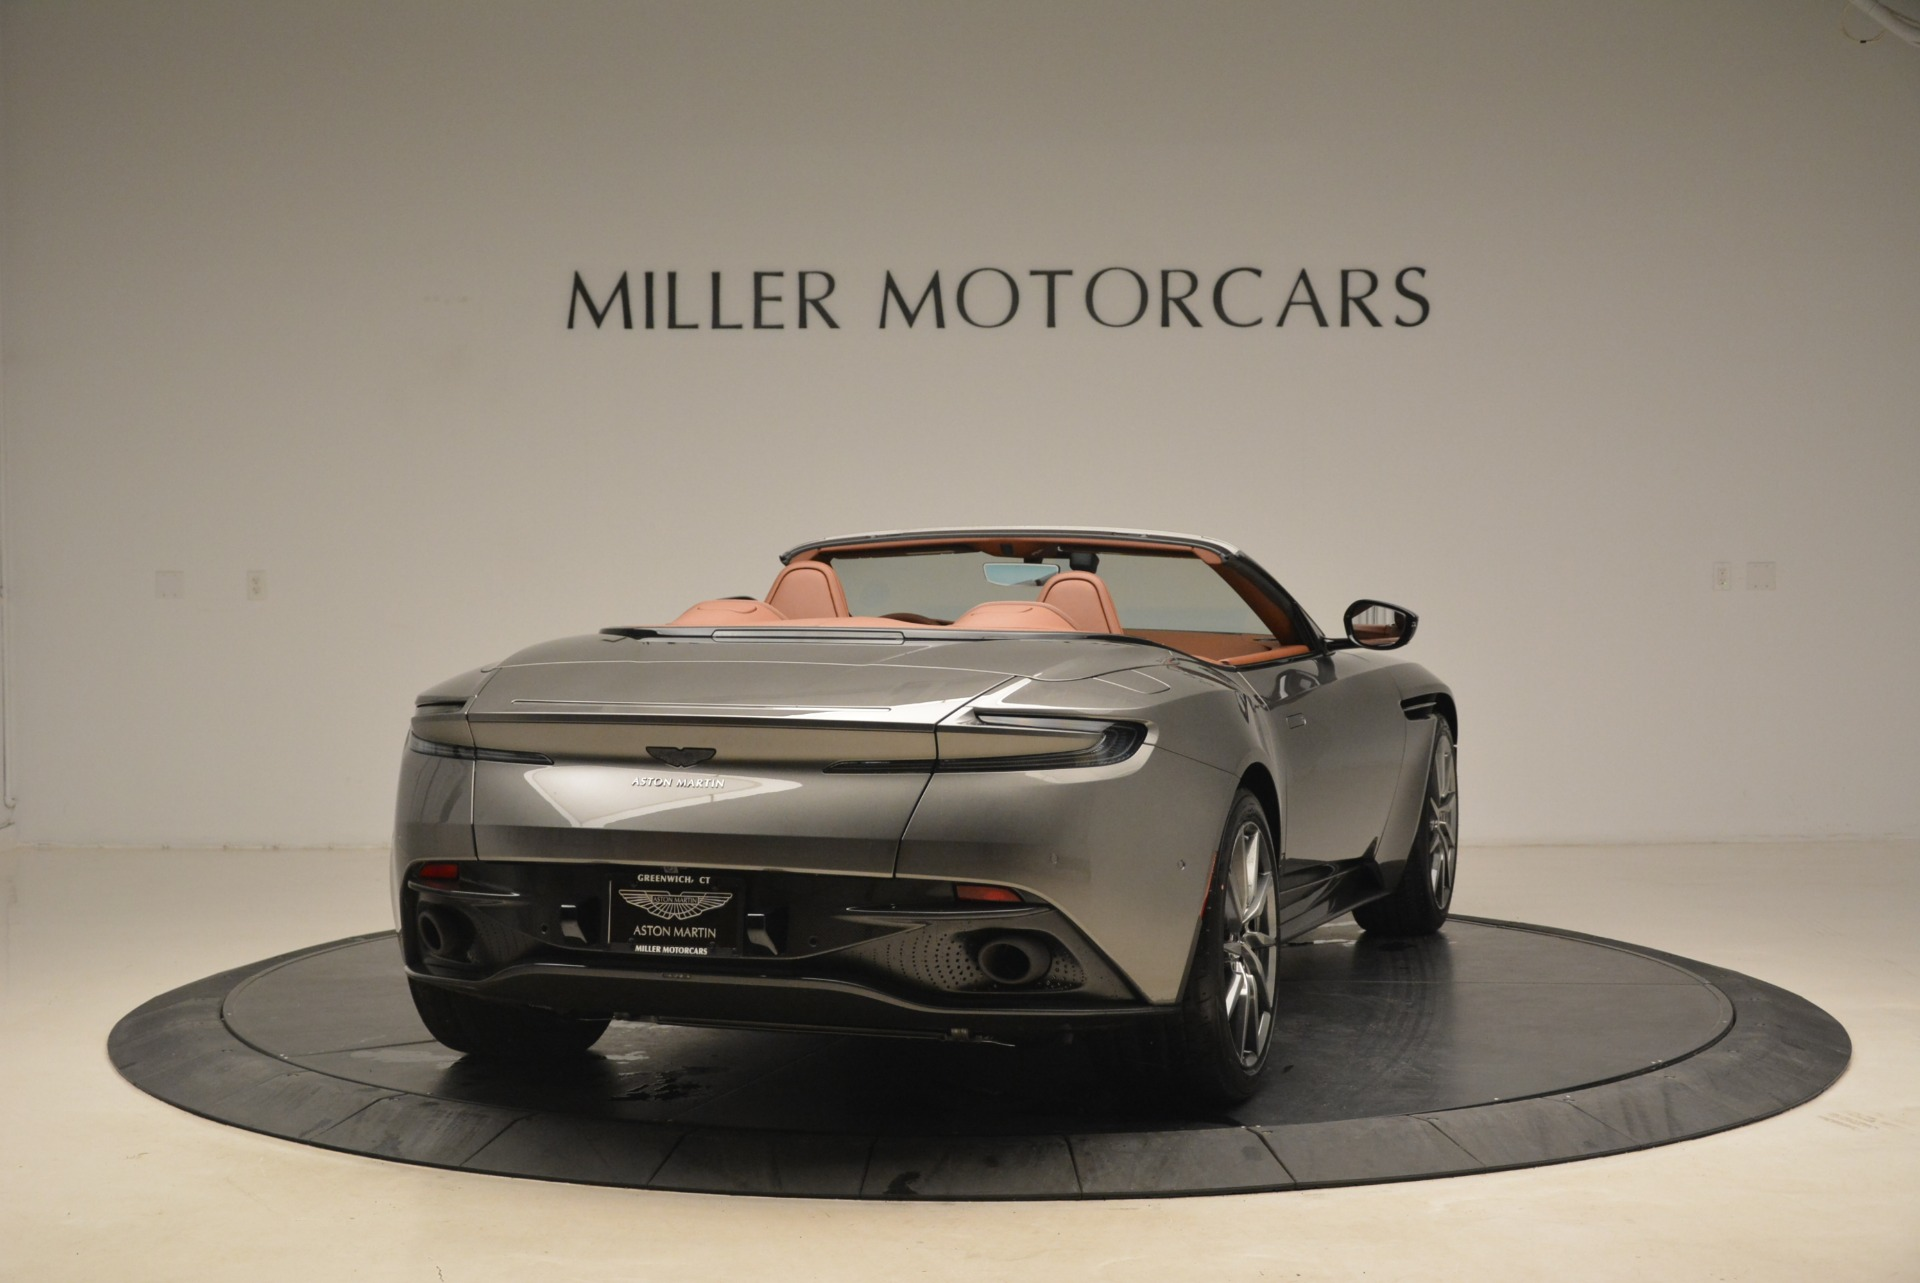 New 2019 Aston Martin DB11 Volante  For Sale In Greenwich, CT. Alfa Romeo of Greenwich, A1284 2209_p7